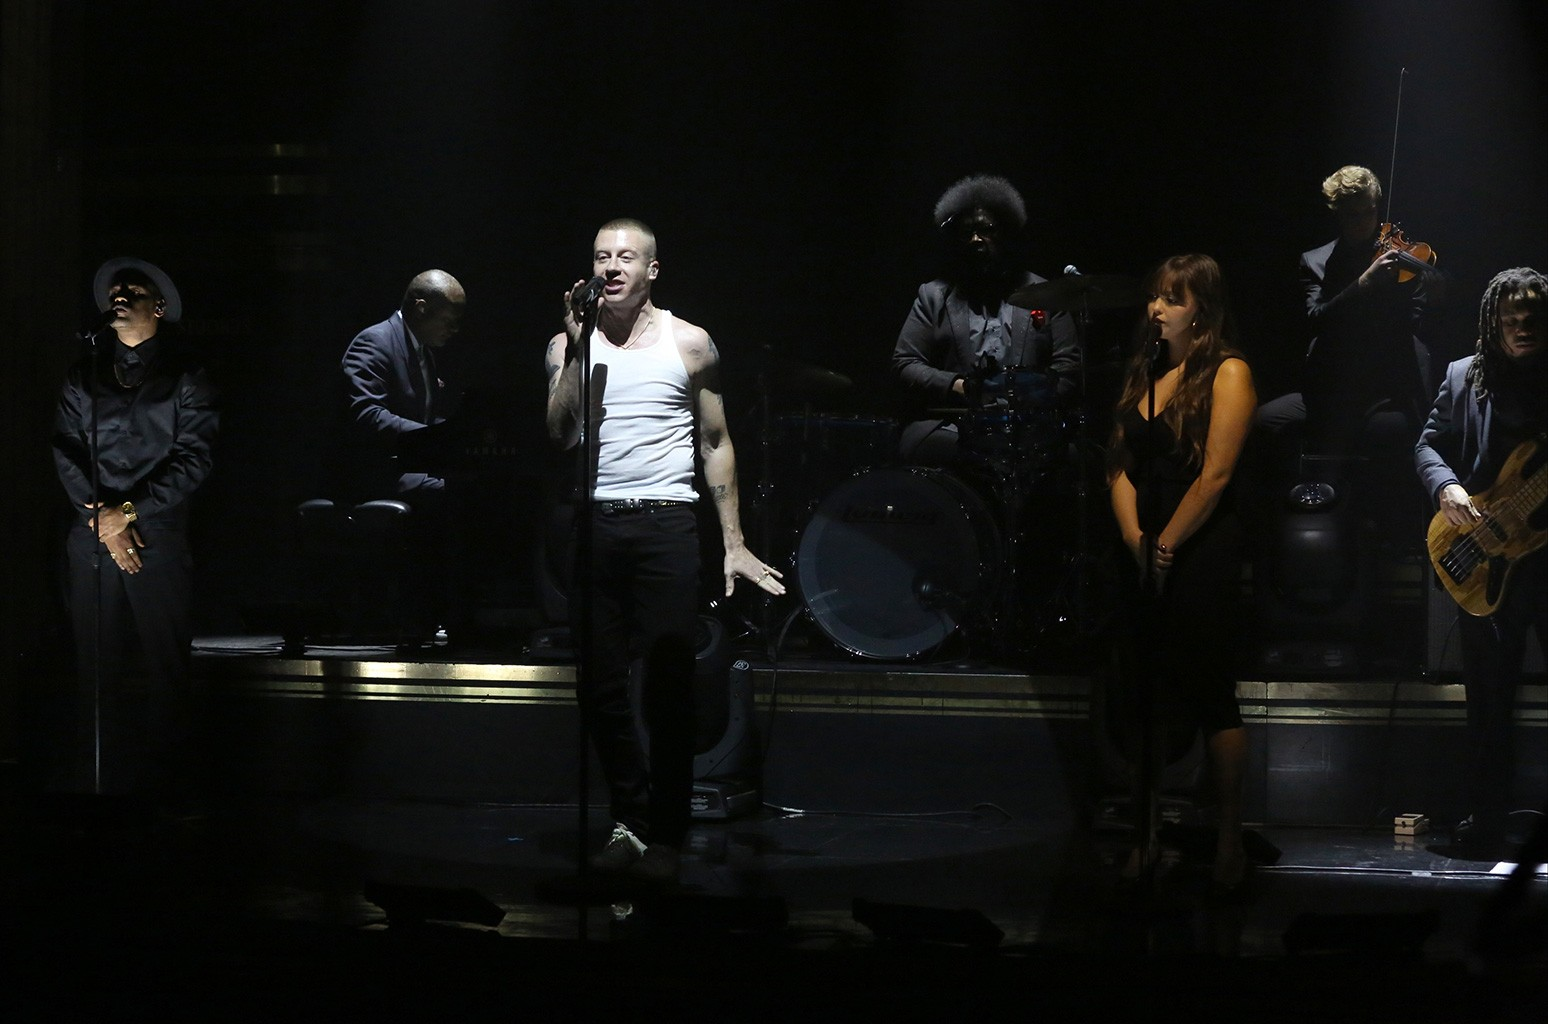 Macklemore performs with Ariana Deboo and The Roots on The Tonight Show Starring Jimmy Fallon on Nov. 16, 2016.